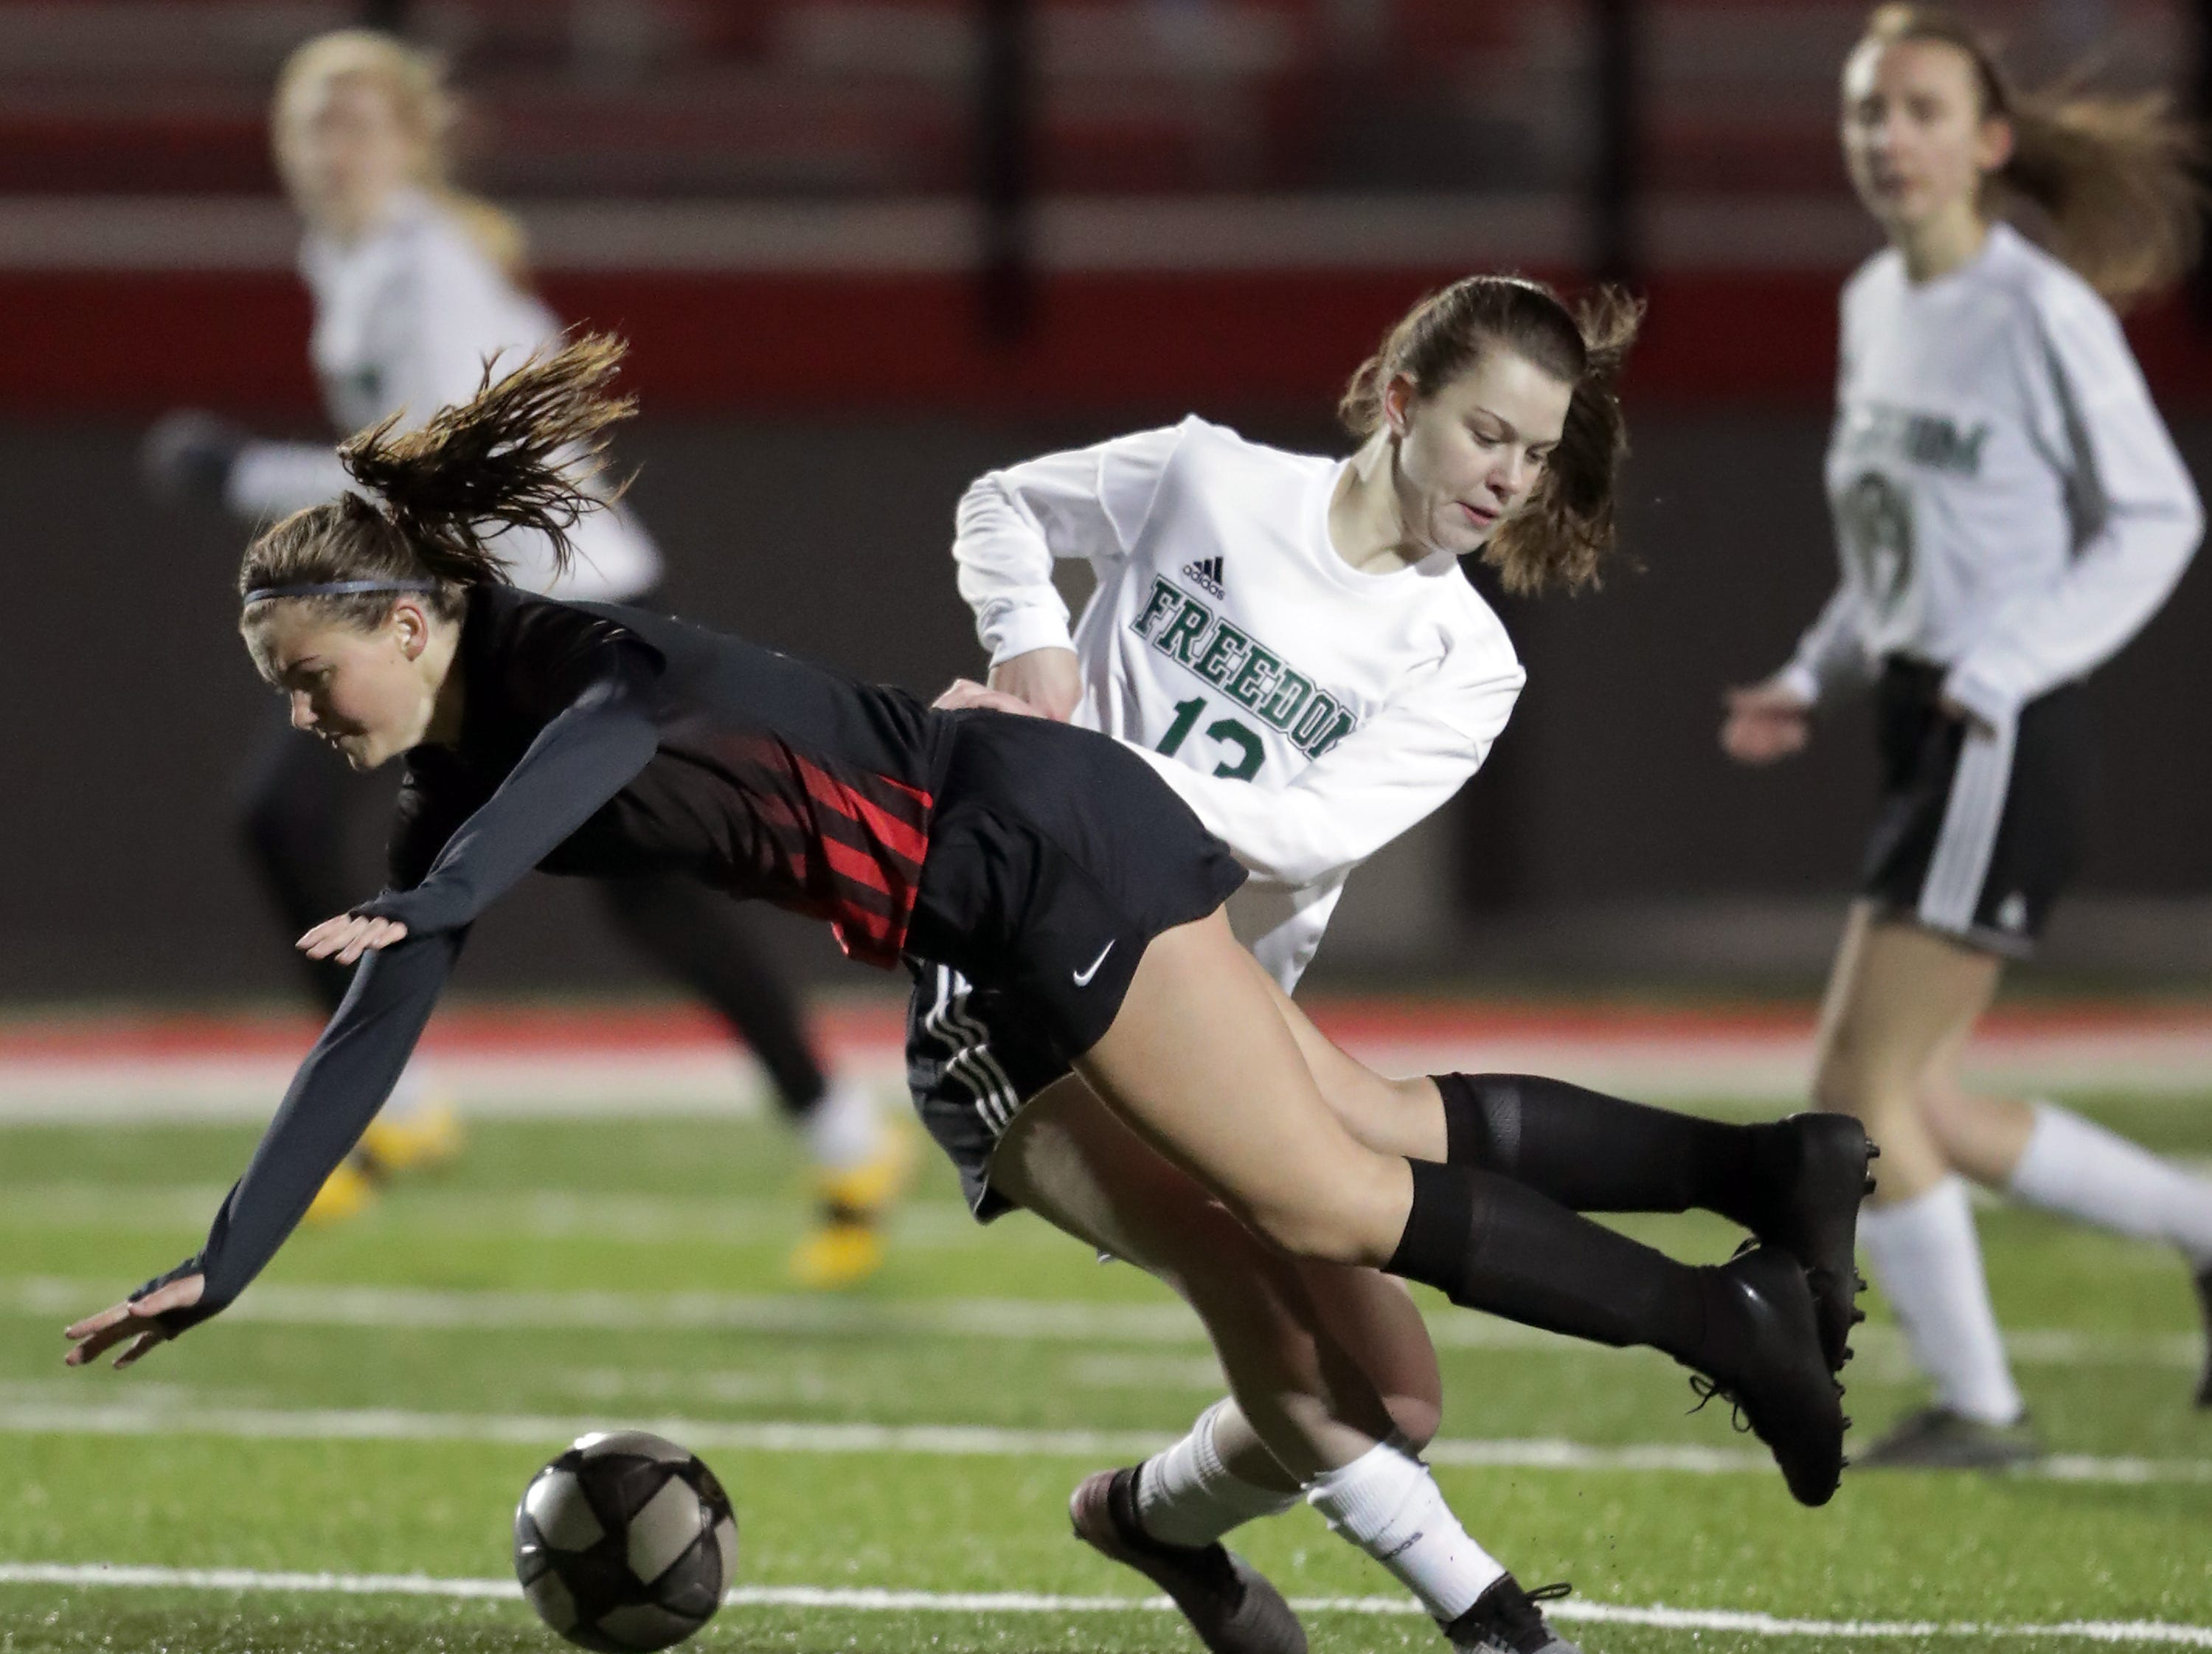 Hortonville High School's #15 Bailey Greisbach against Freedom High School's #13 Hannah Lornson during their girls soccer game on Tuesday, March 26, 2019, in Hortonville, Wis. Freedom defeated Hortonville 3 to 0.Wm. Glasheen/USA TODAY NETWORK-Wisconsin.